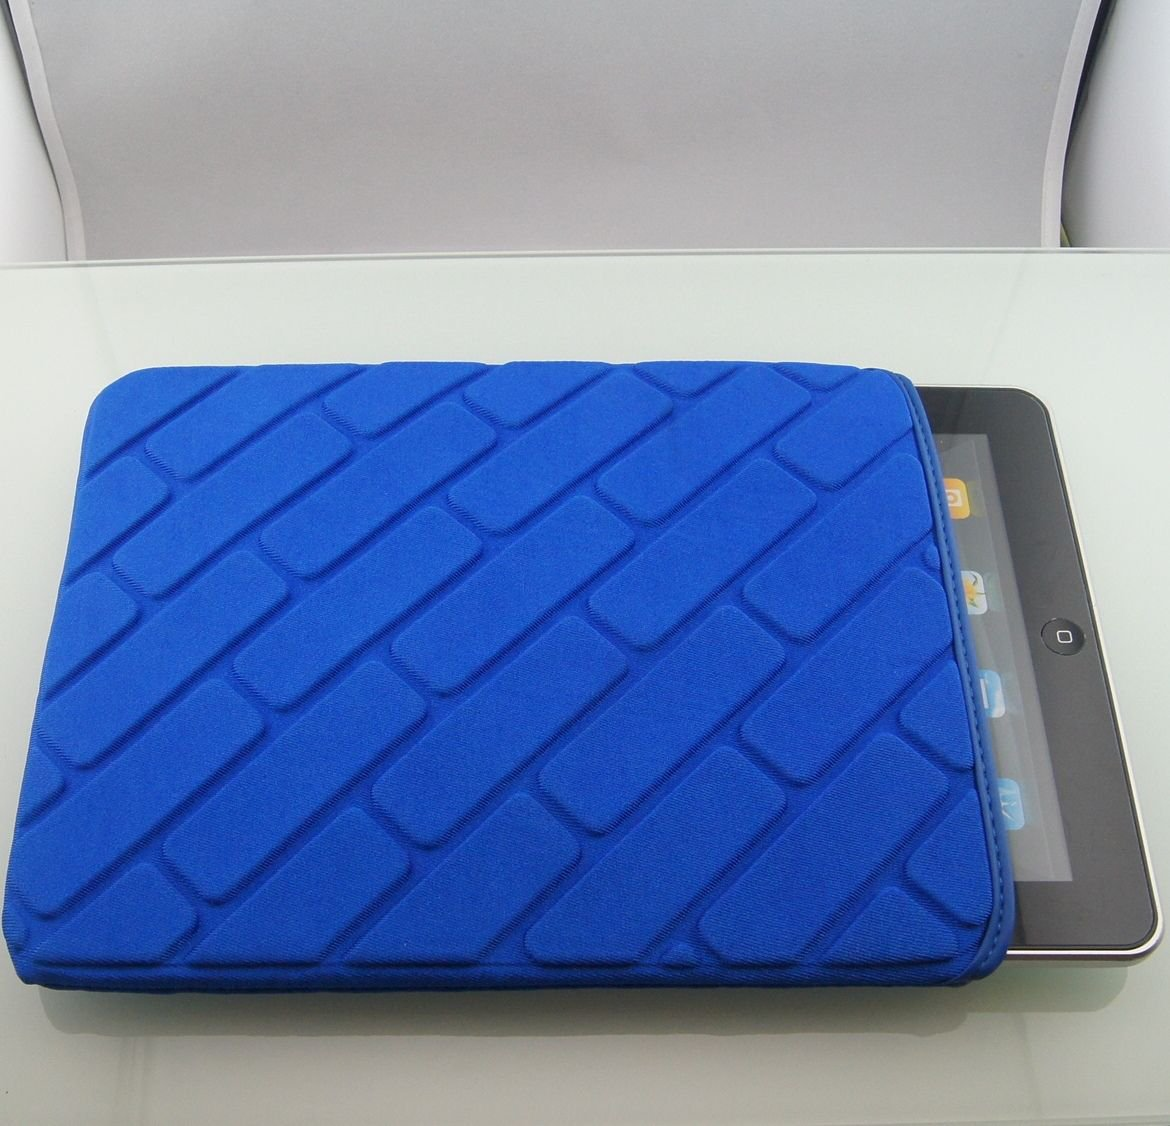 Sharp Blue color Waterproof Soft Sleeve Bag Case Cover Pouch for Apple Ipad 3 4